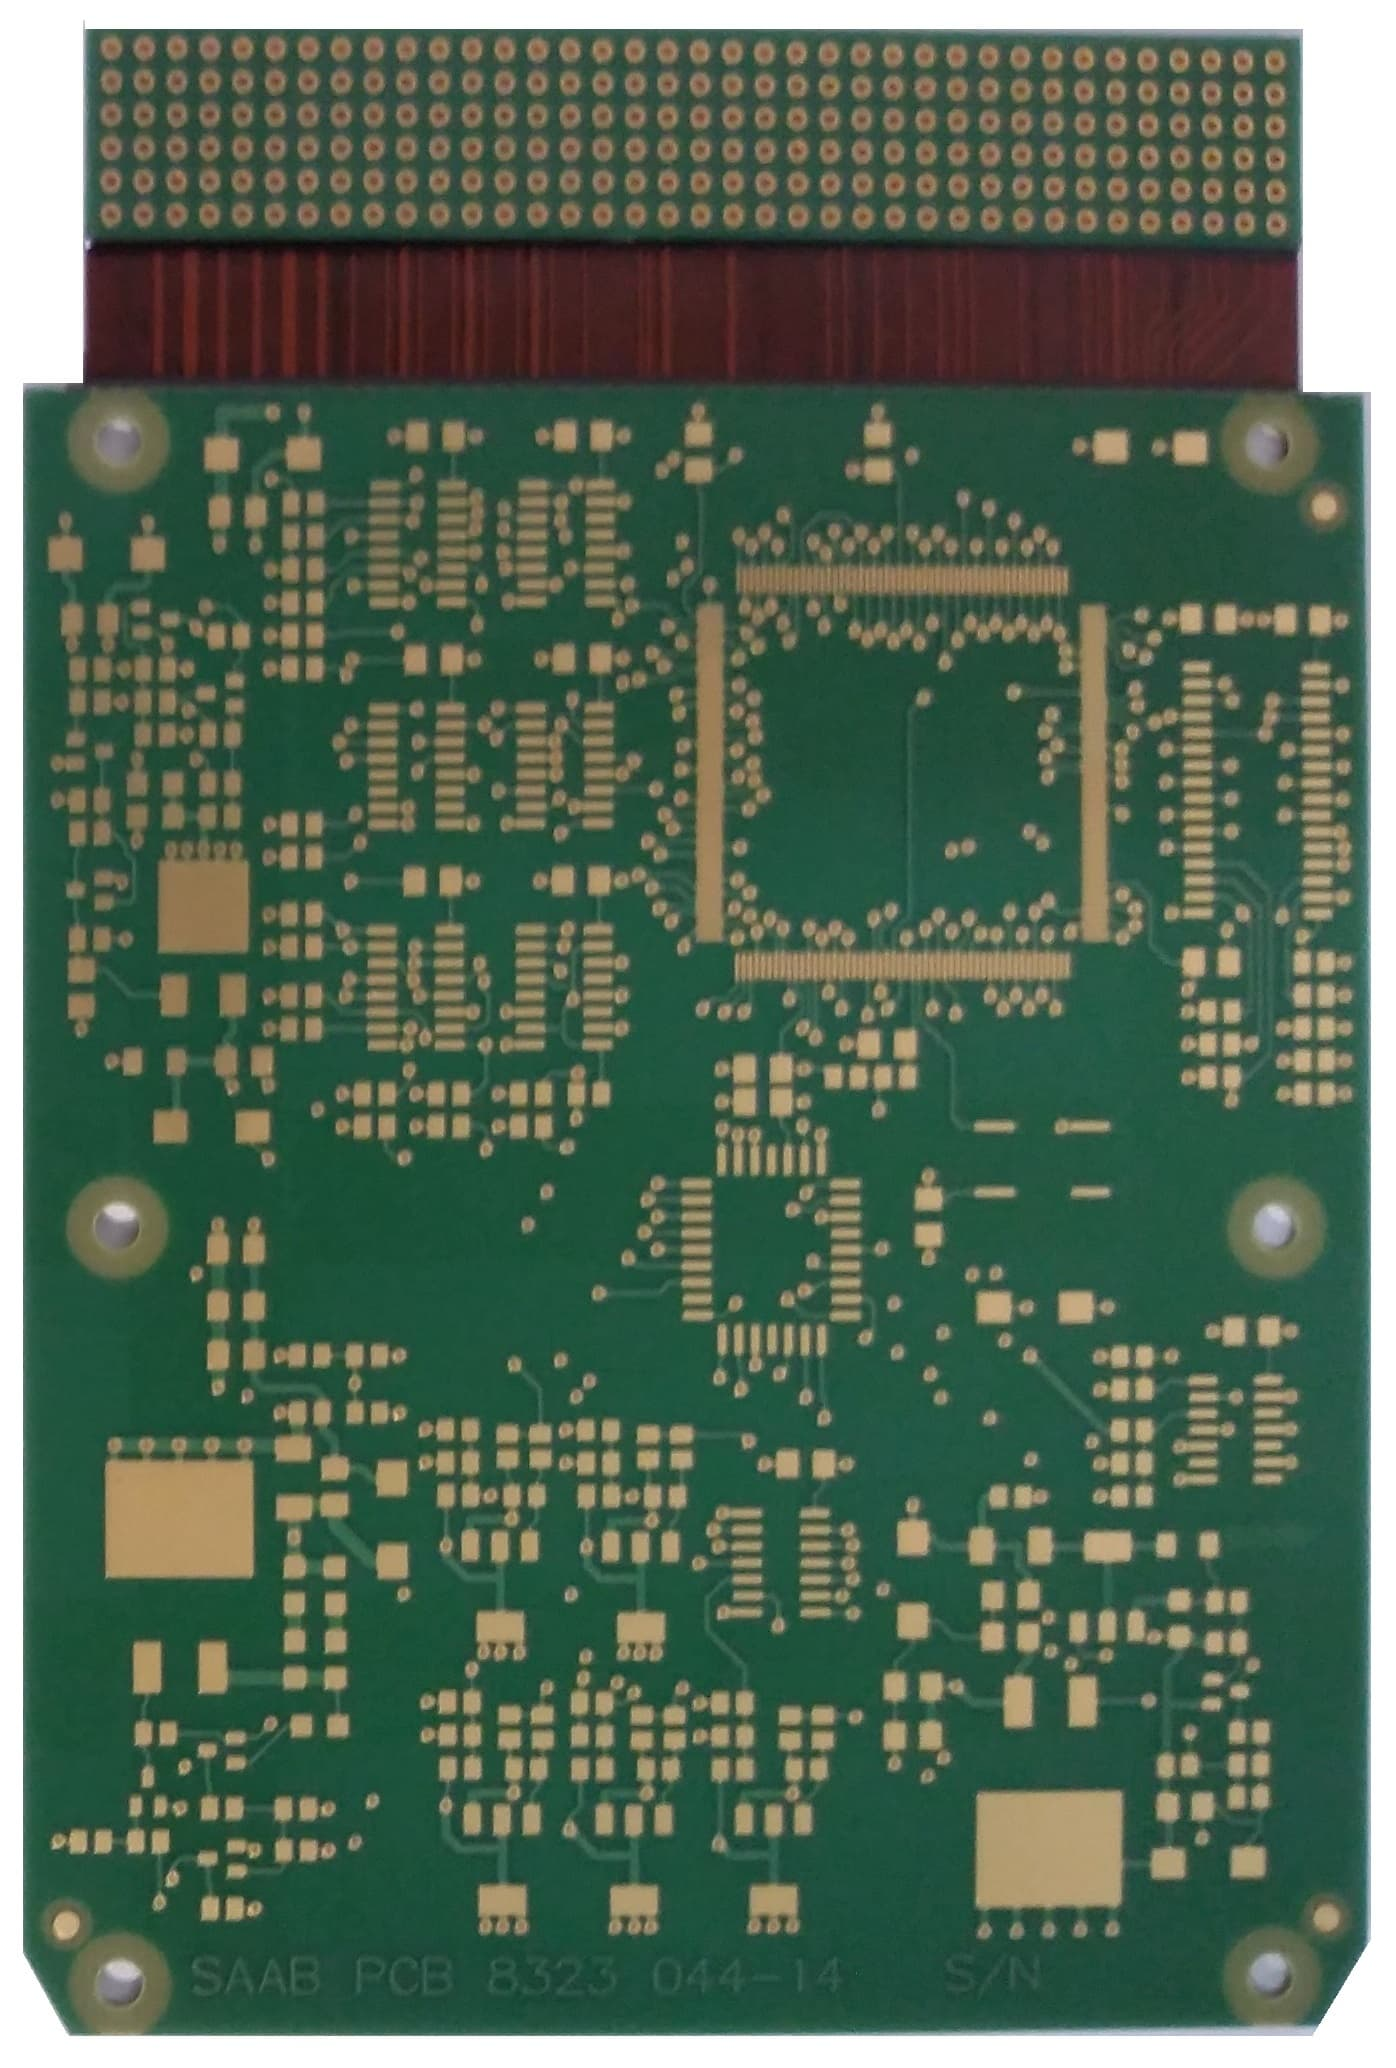 Electrical Equipment Components Telecomspassive Componentspcb China Flexible Printed Circuit Board Fpcb Fpc Rigid Flex Pcb For Car System